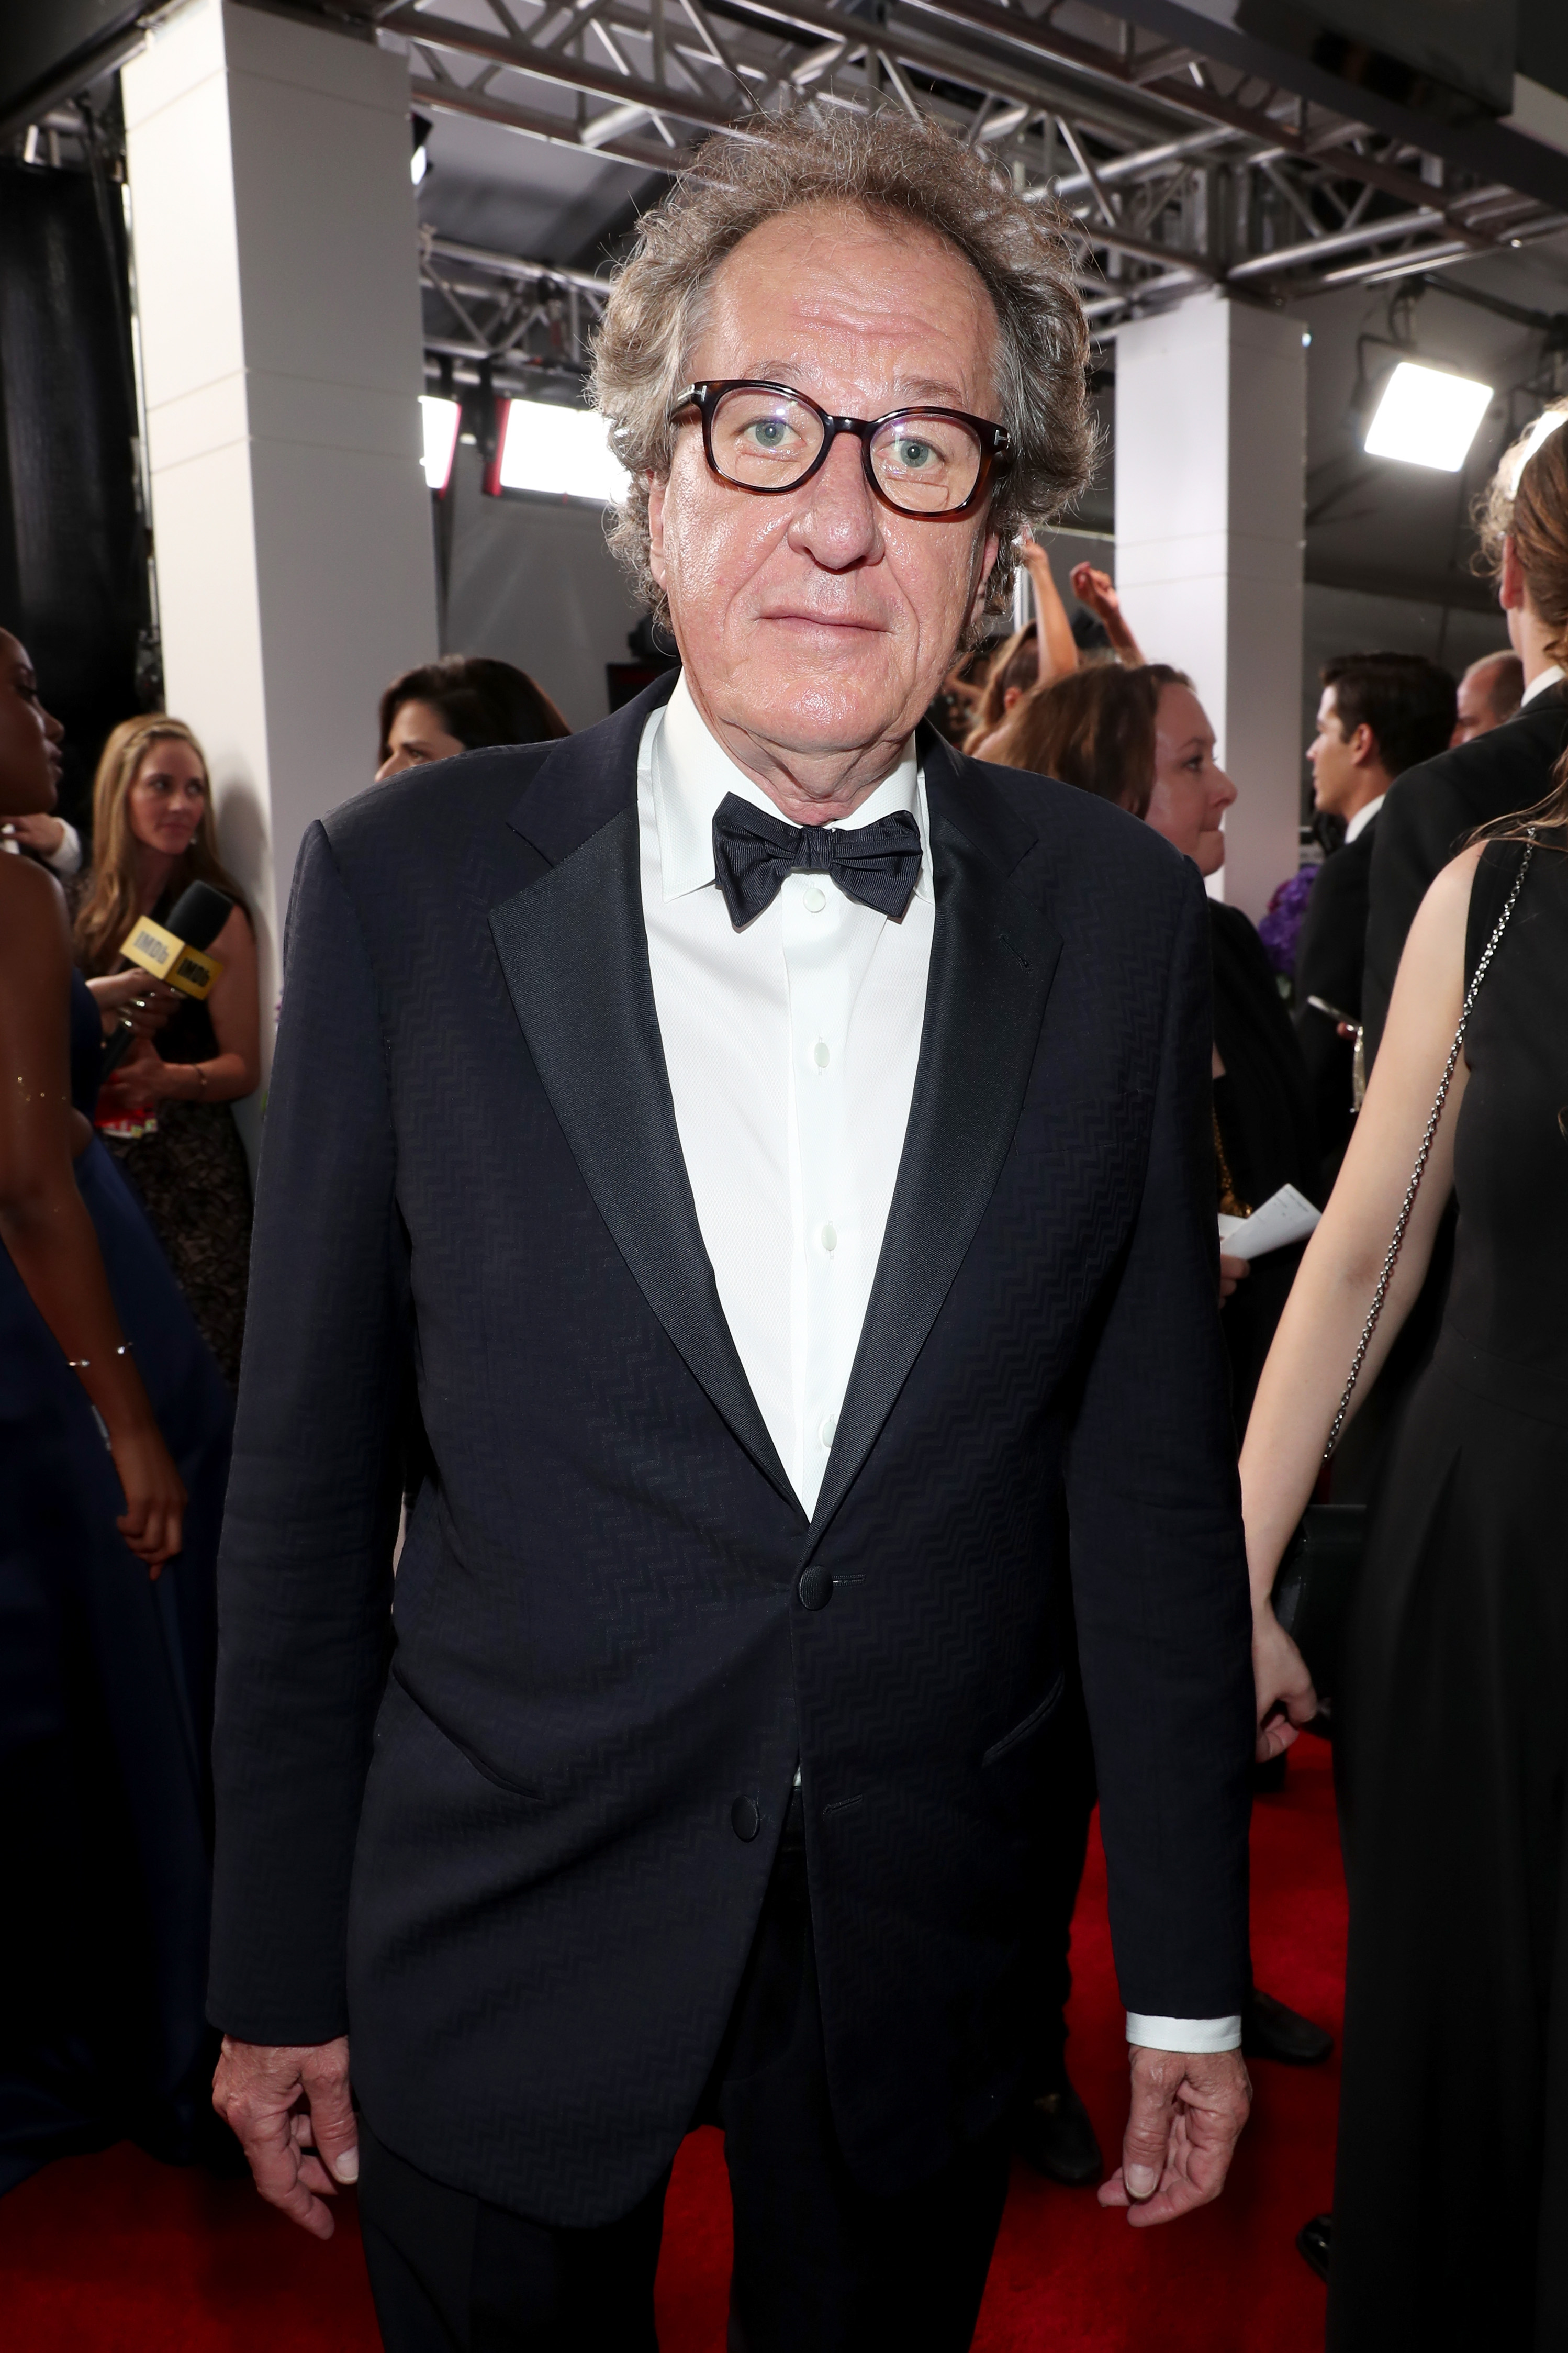 Geoffrey-Rush-Virtually-Housebound-According-To-His-Lawyer-Following-Accusations-Made-By-An-Australian-Newspaper